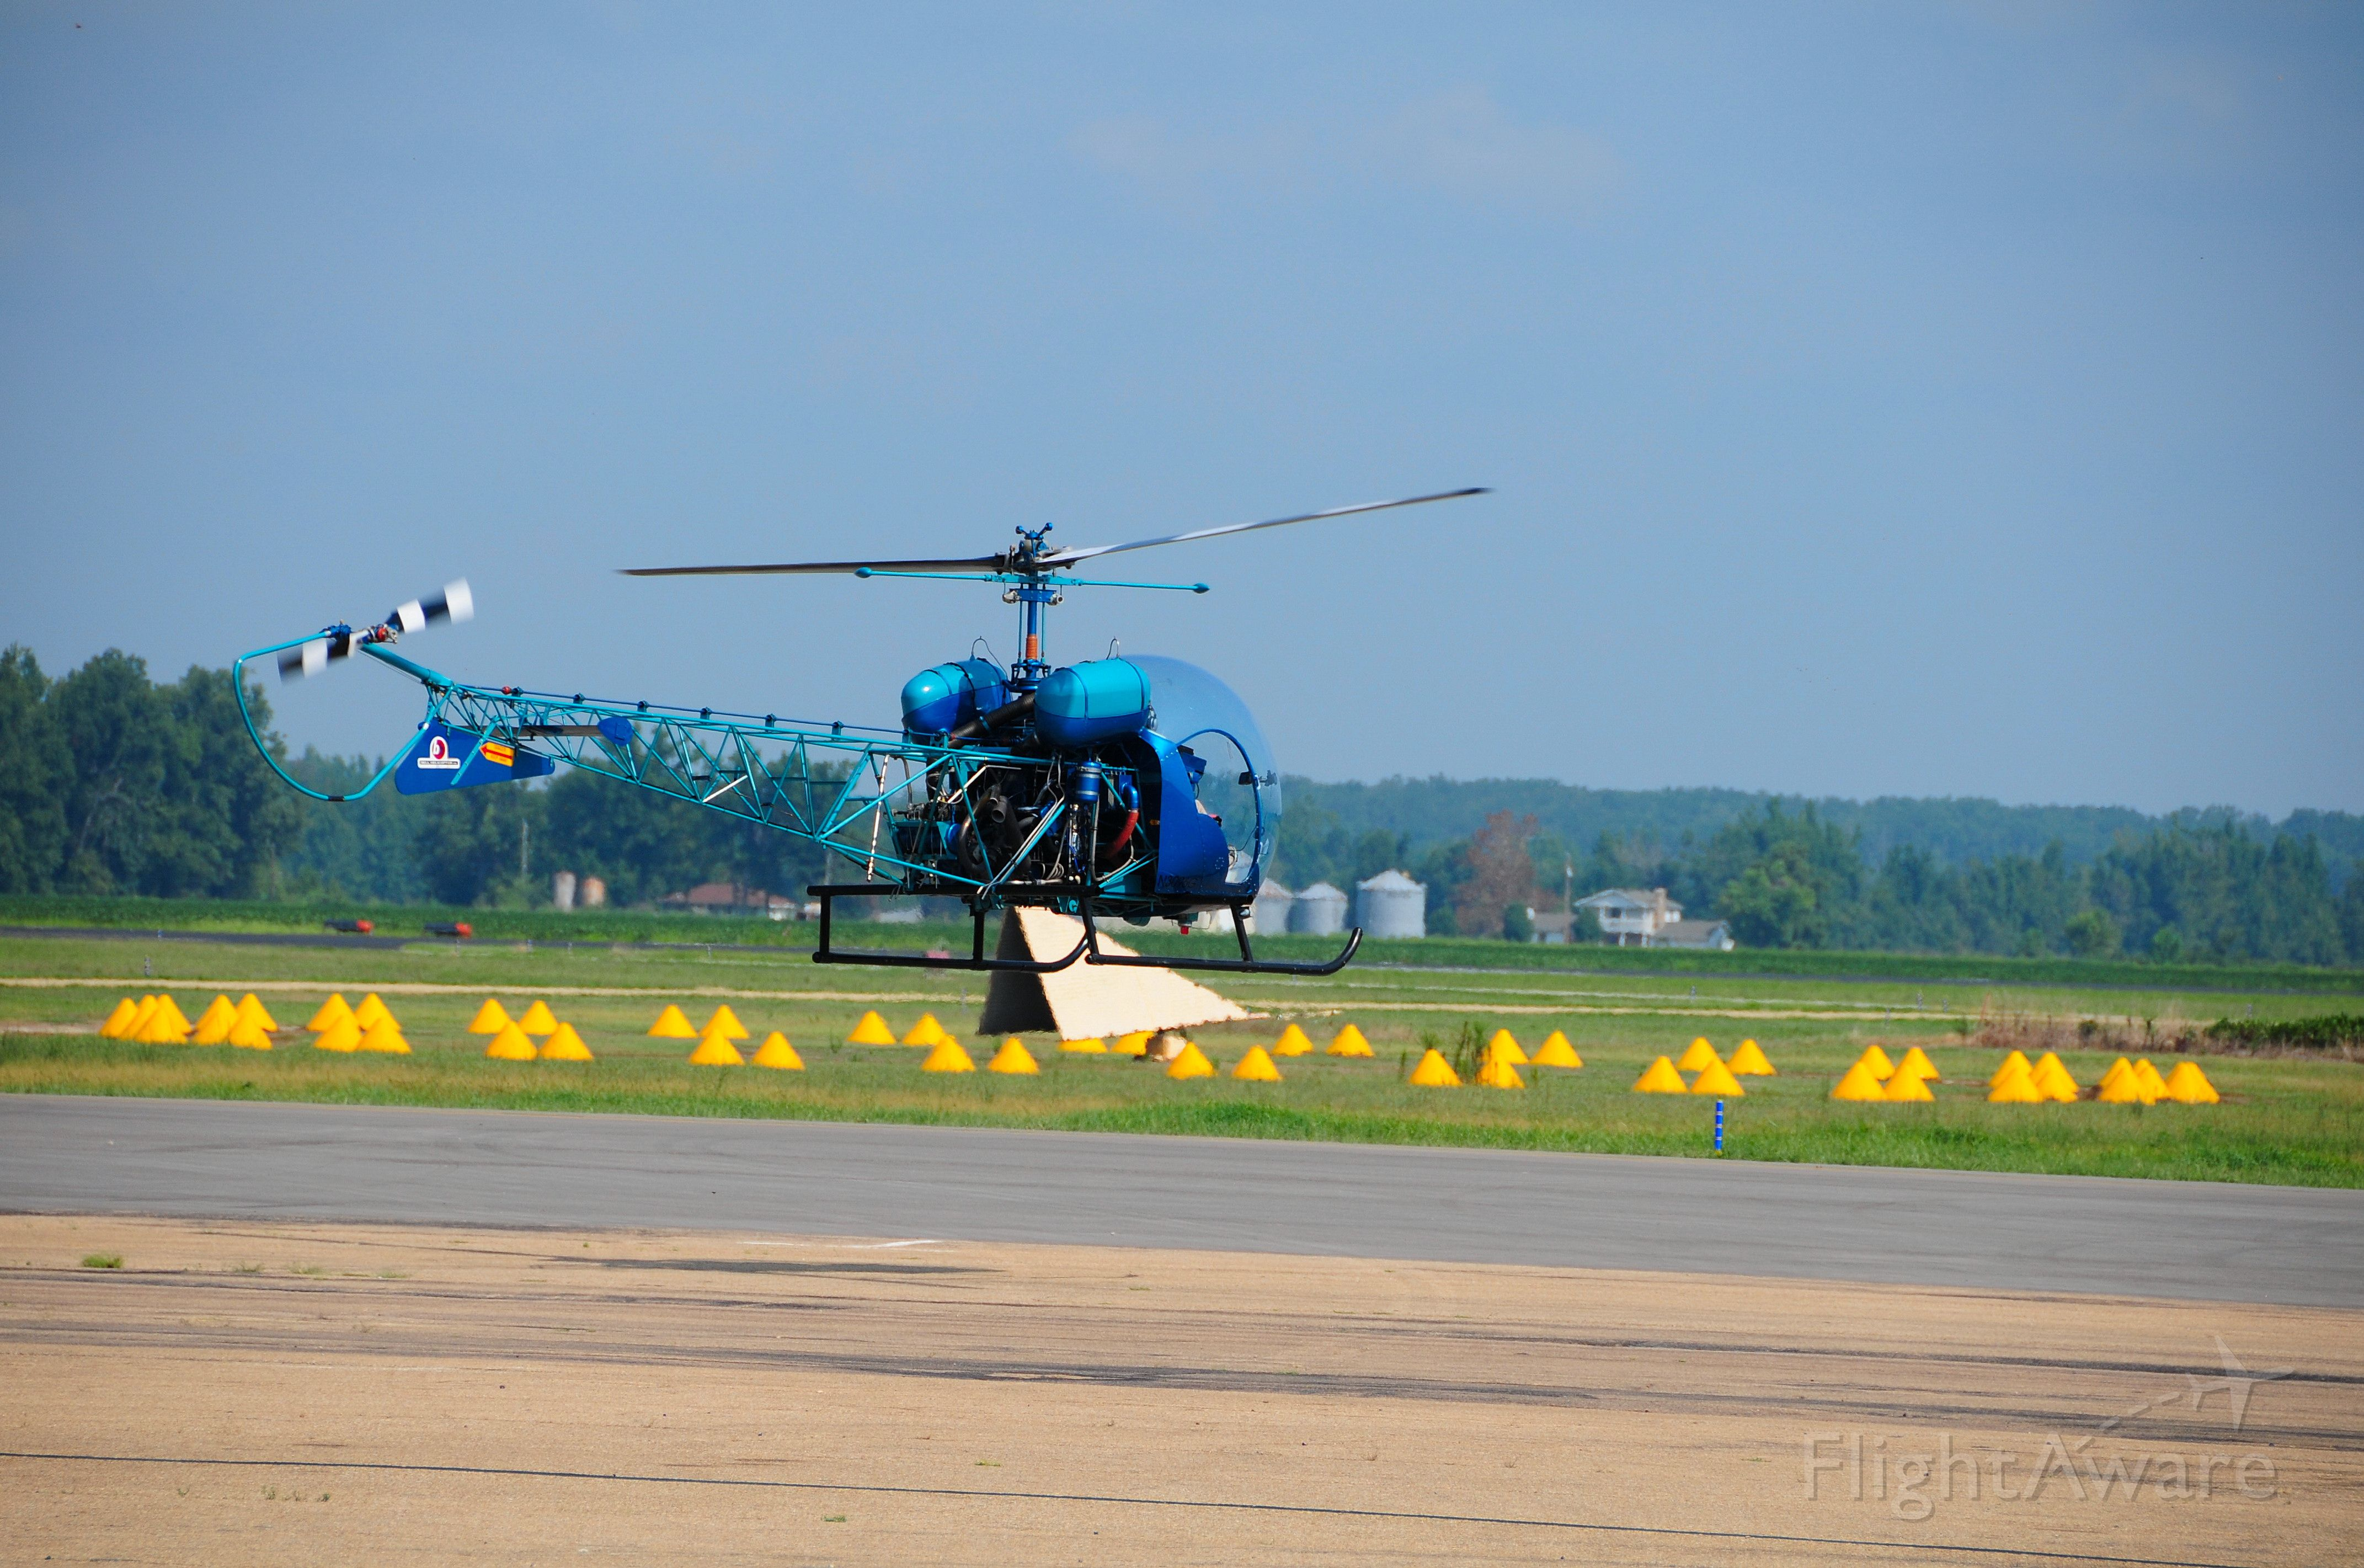 N3096G — - Bill Schrum Stopped in for fuel and was departing southbound in Blue Thunder.